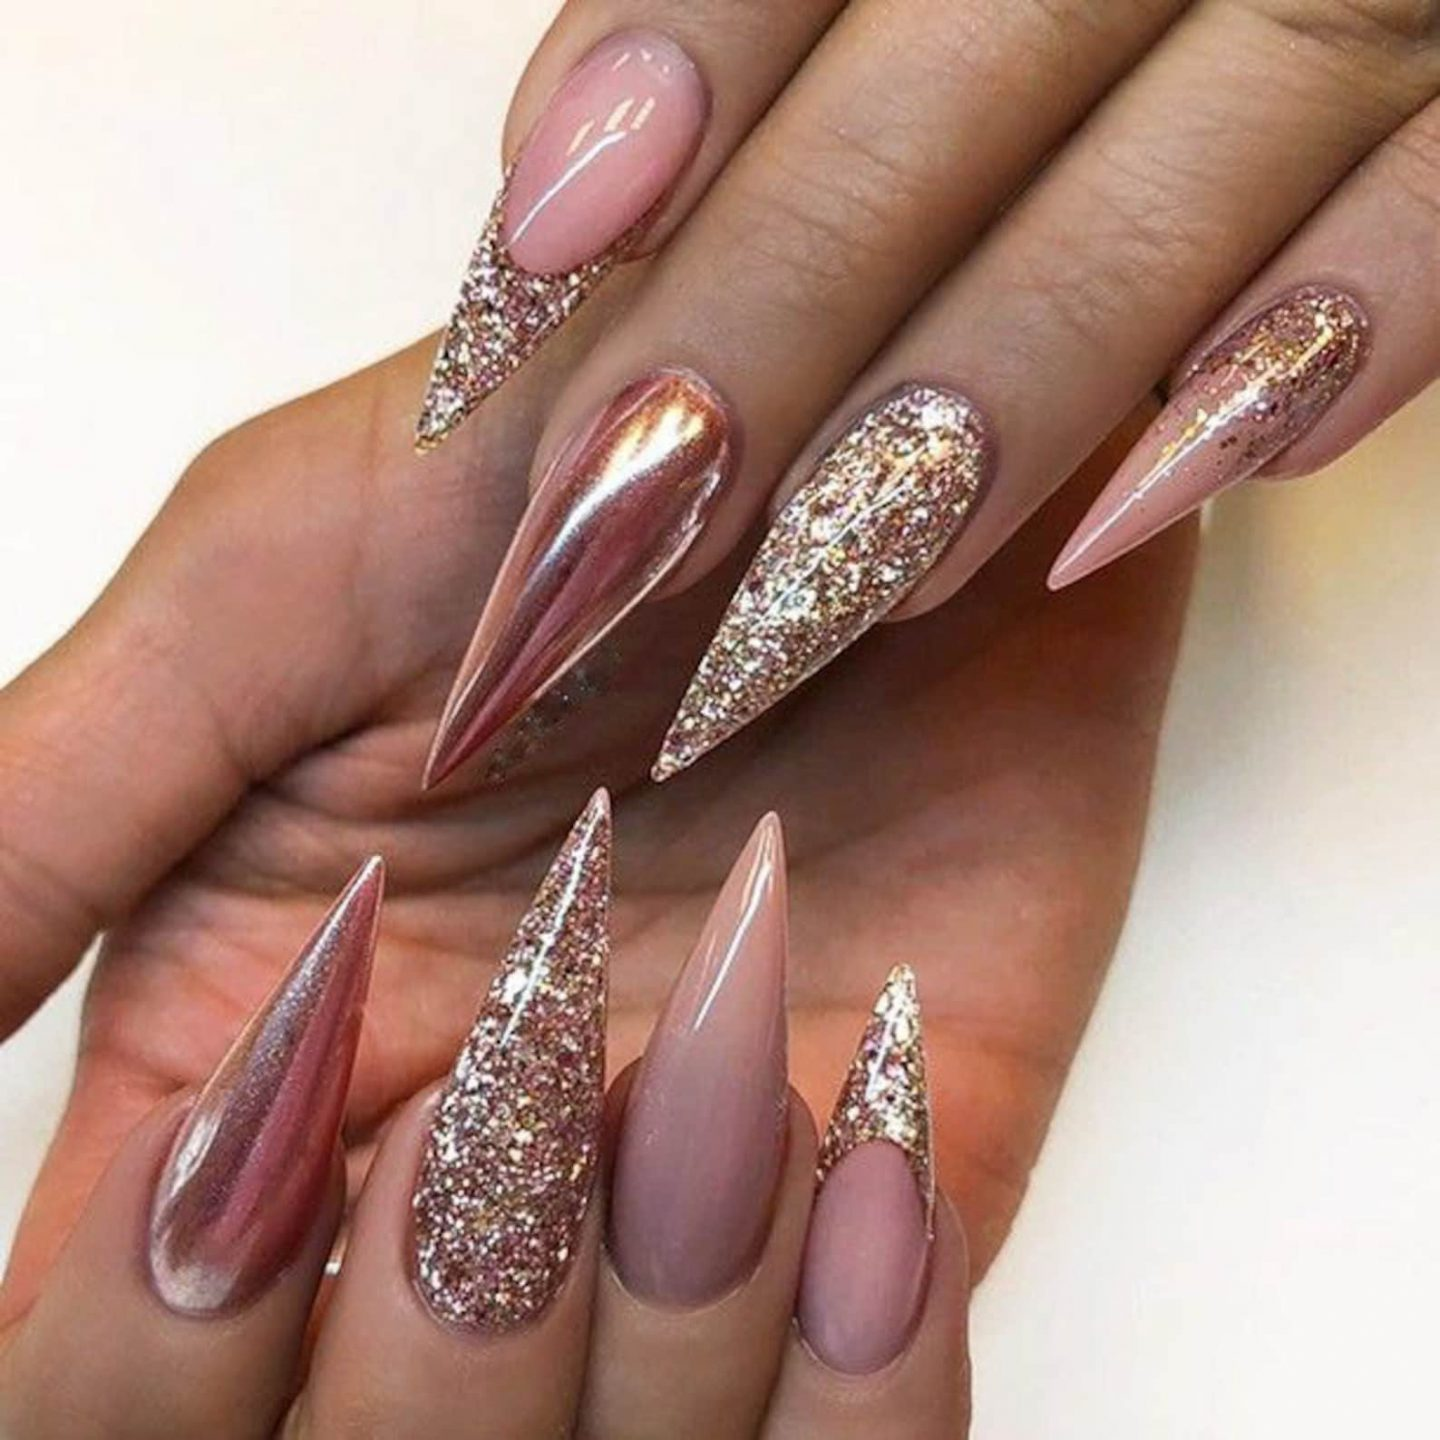 Nude stiletto nails with rose gold glitter